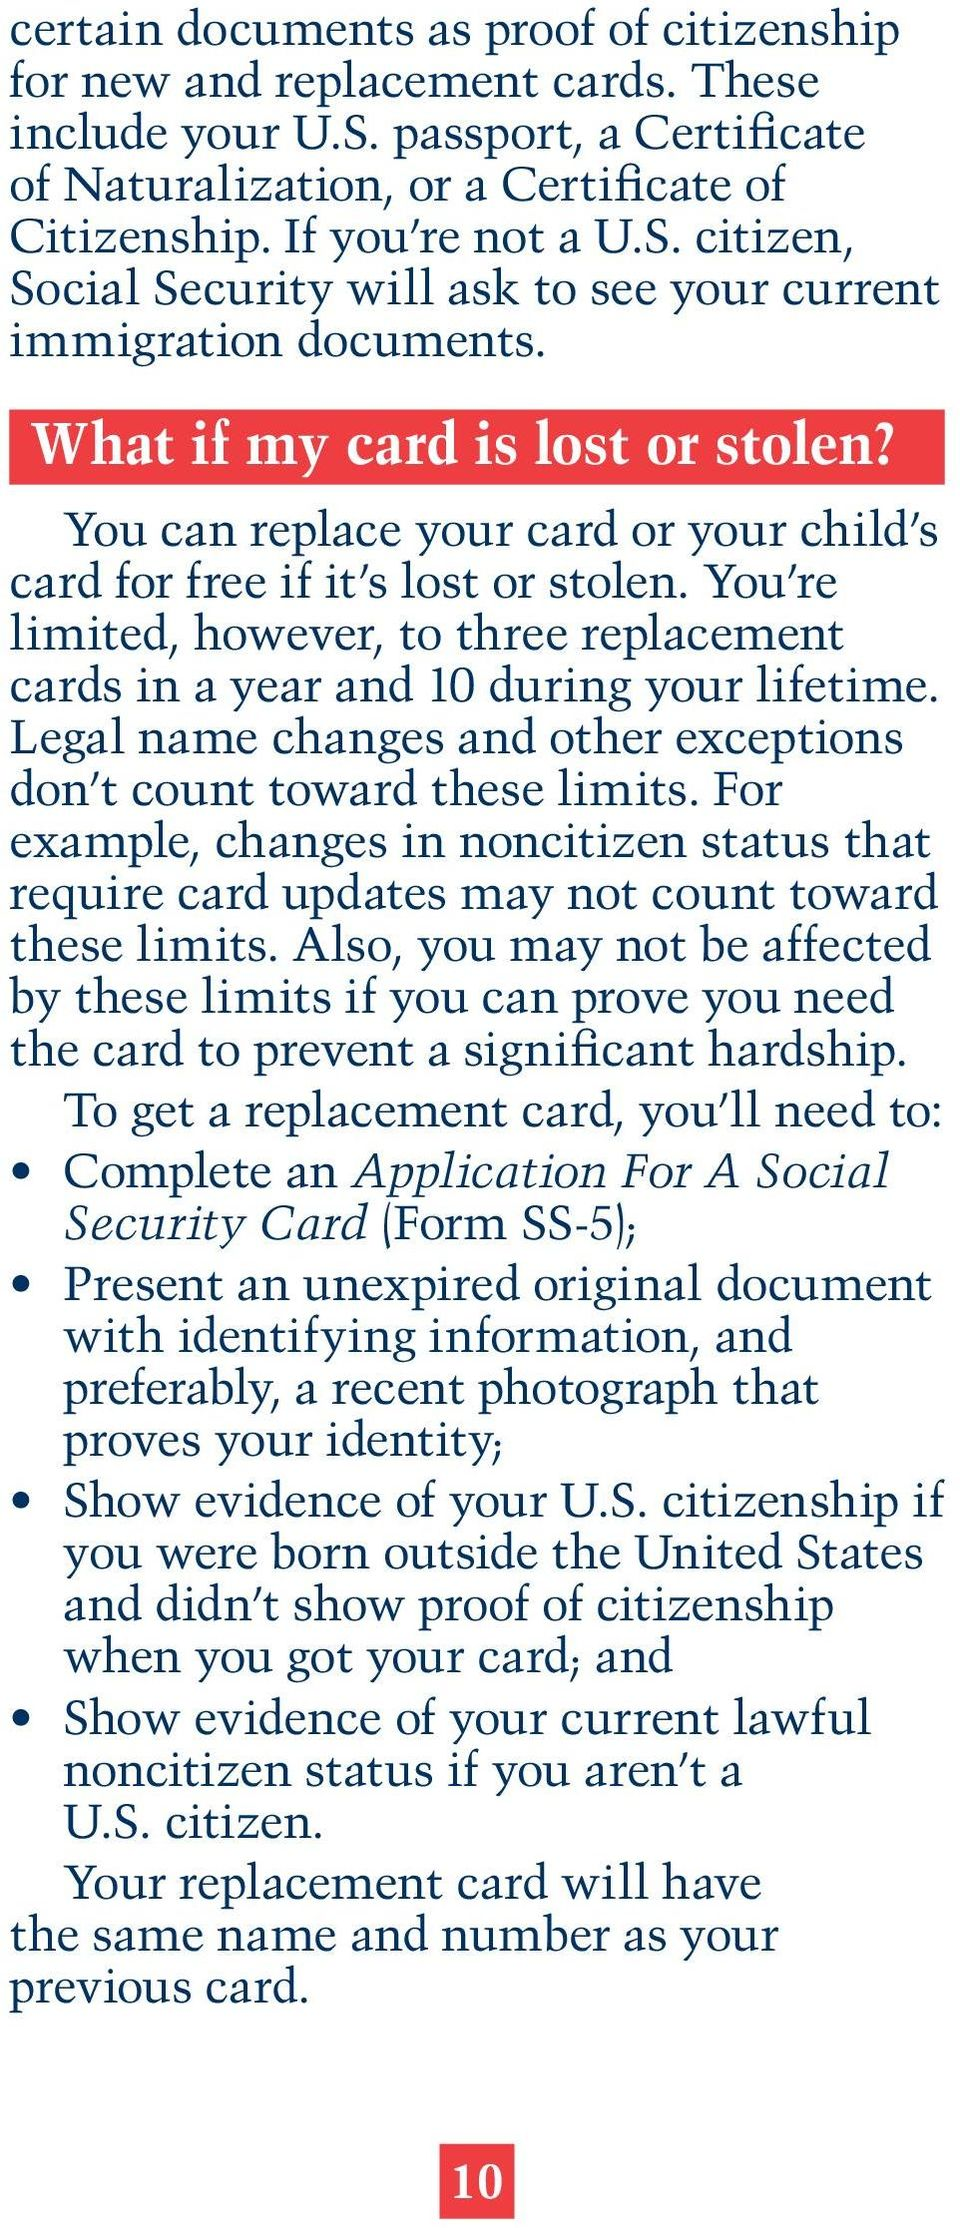 You re limited, however, to three replacement cards in a year and 10 during your lifetime. Legal name changes and other exceptions don t count toward these limits.